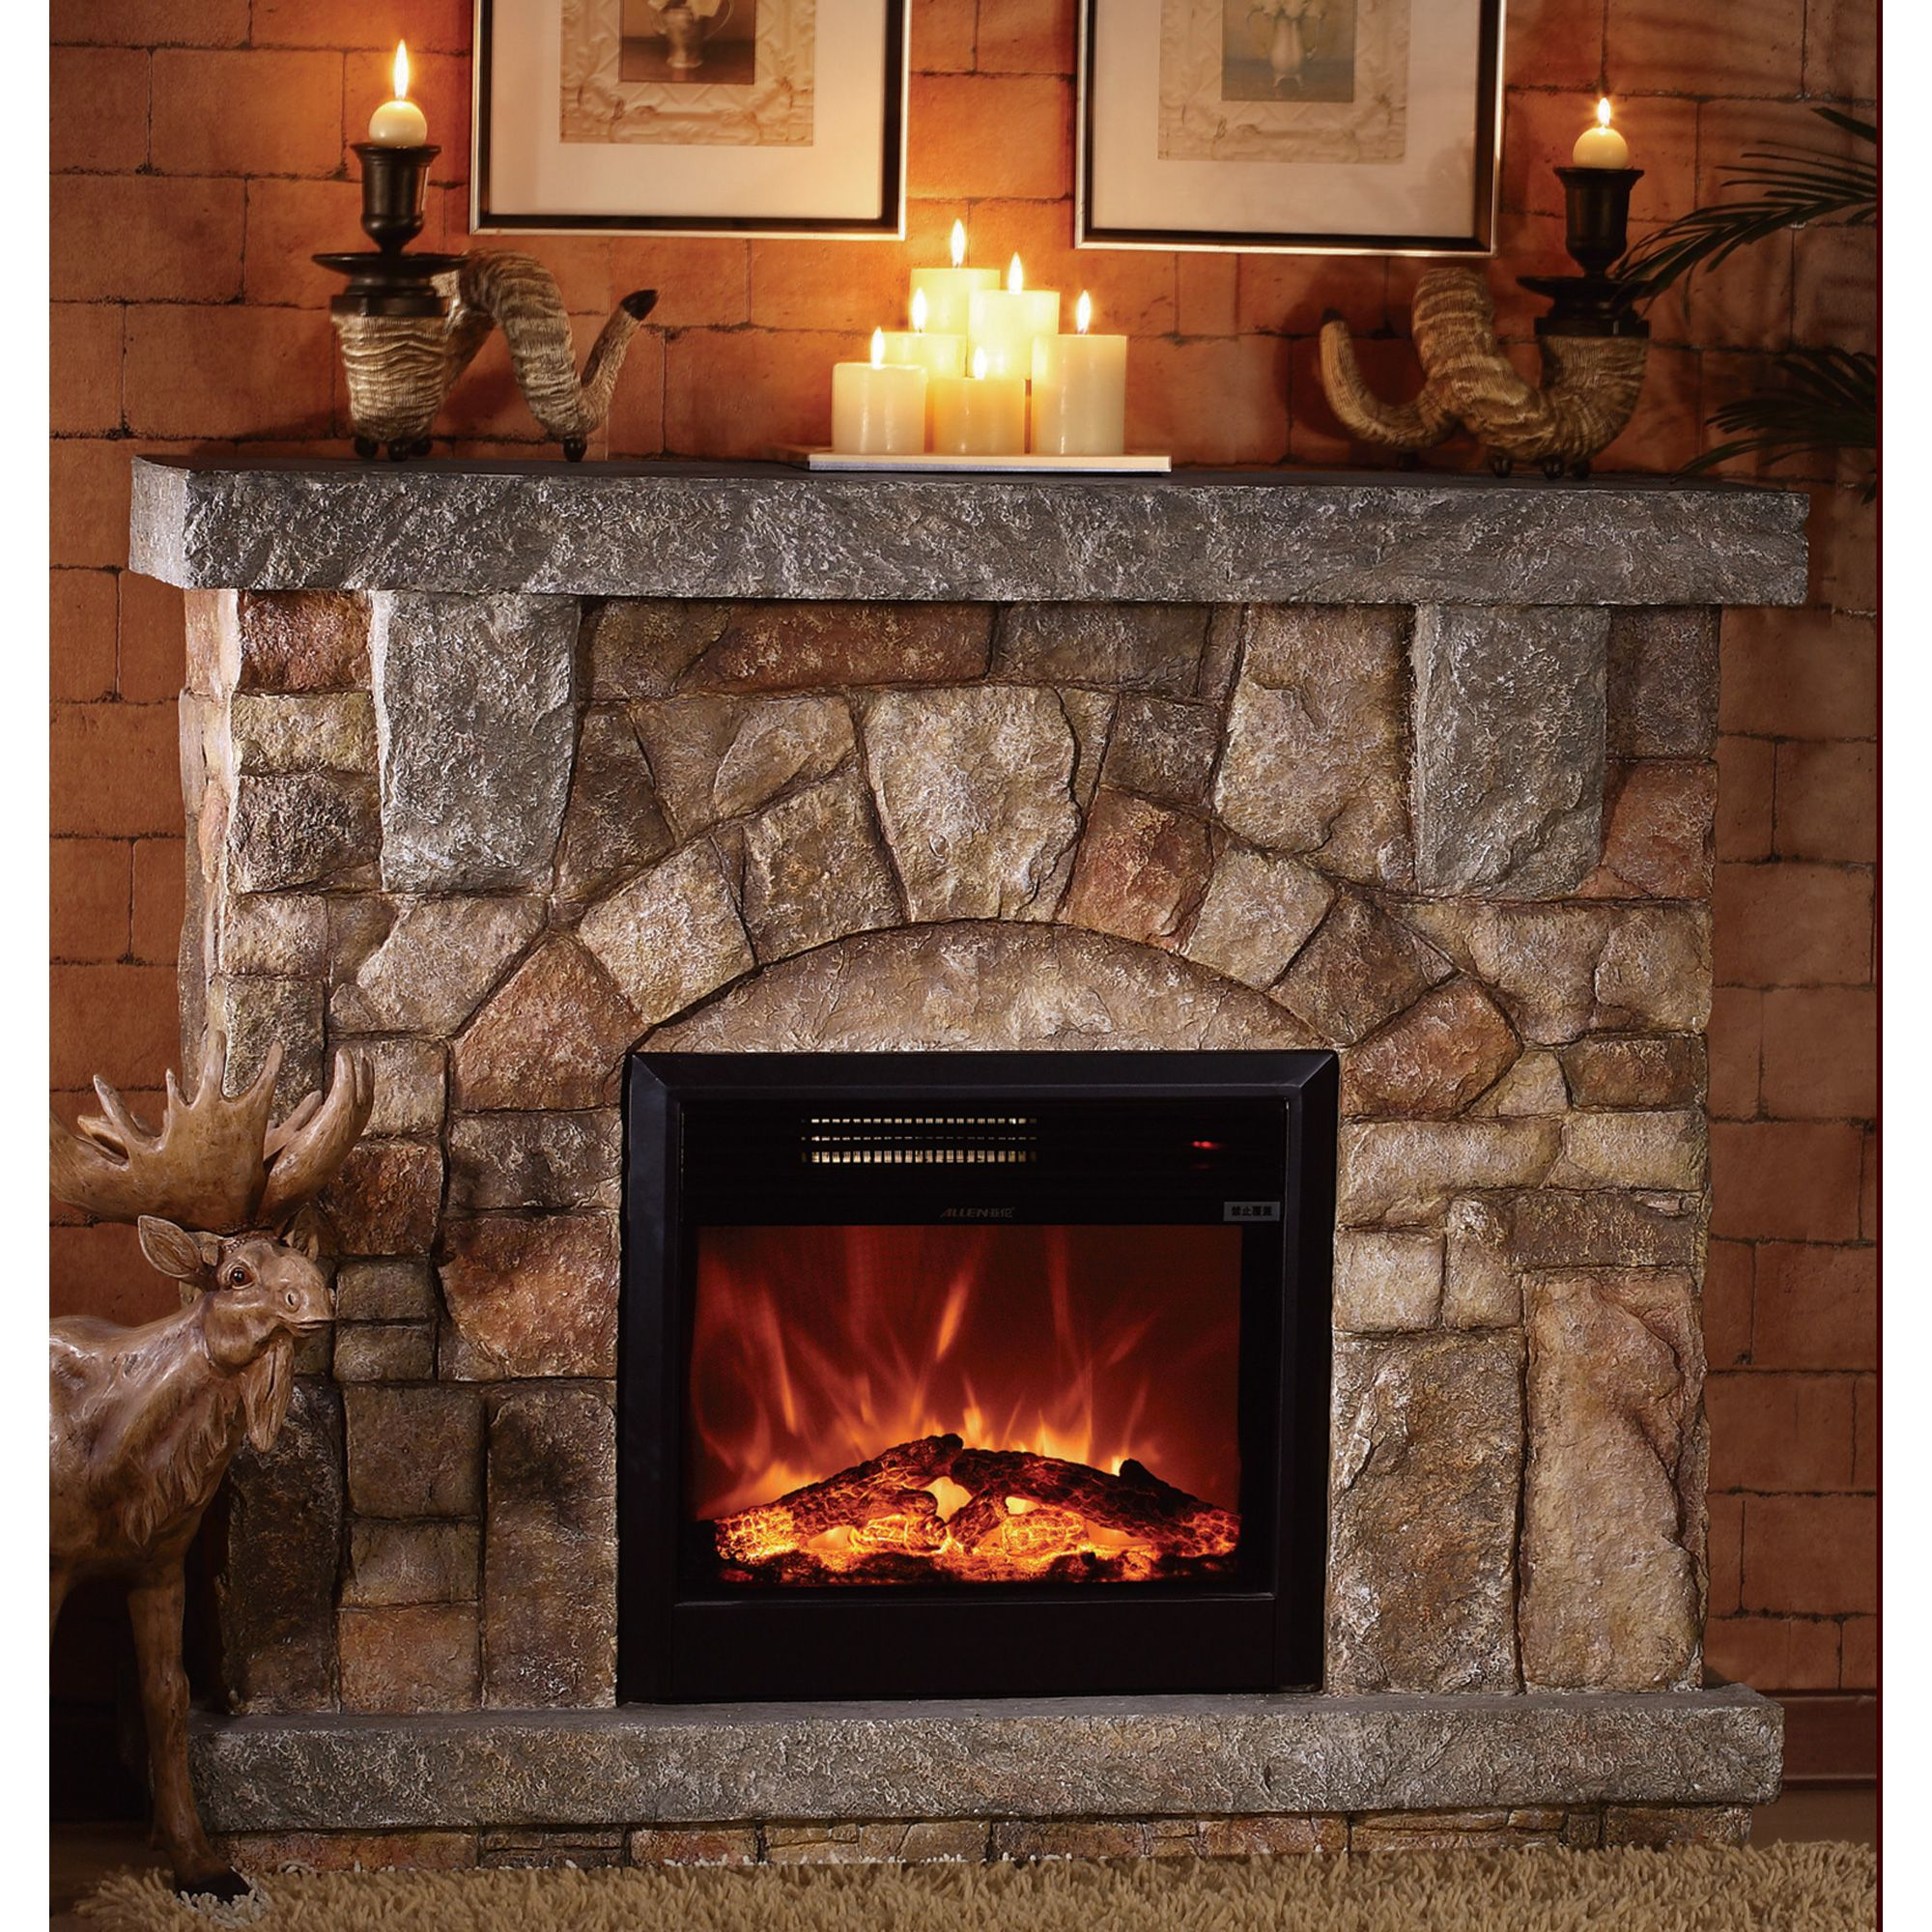 unifire polystone electric fireplace with mantel 4400 btu model